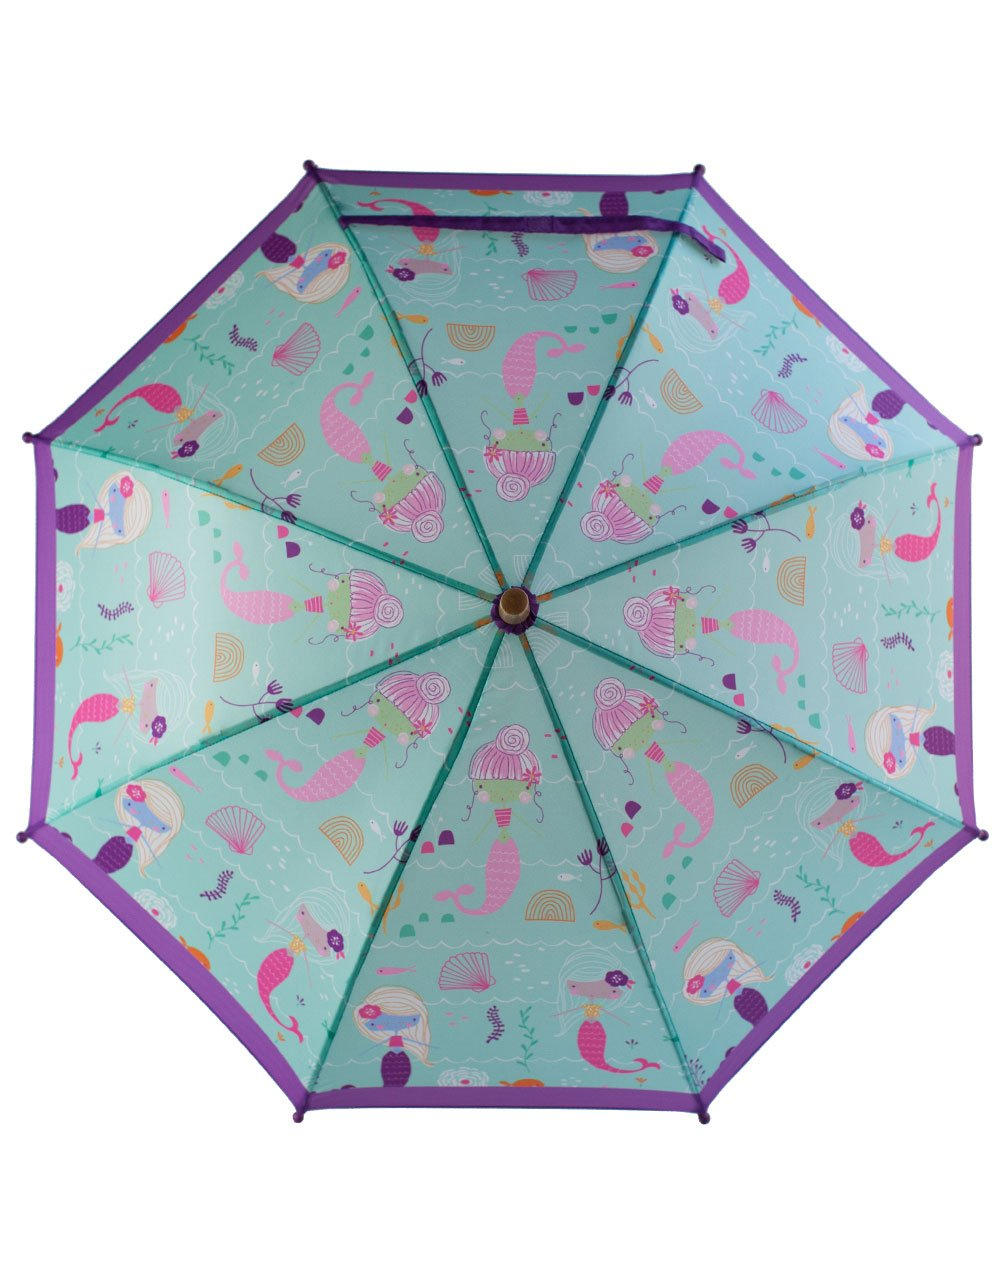 OAKI Double Layer Waterproof Kids Umbrellas with Windproof, UV Protection and C-Shaped Kid's Easy Hold Handle (Mermaids) by OAKI (Image #3)